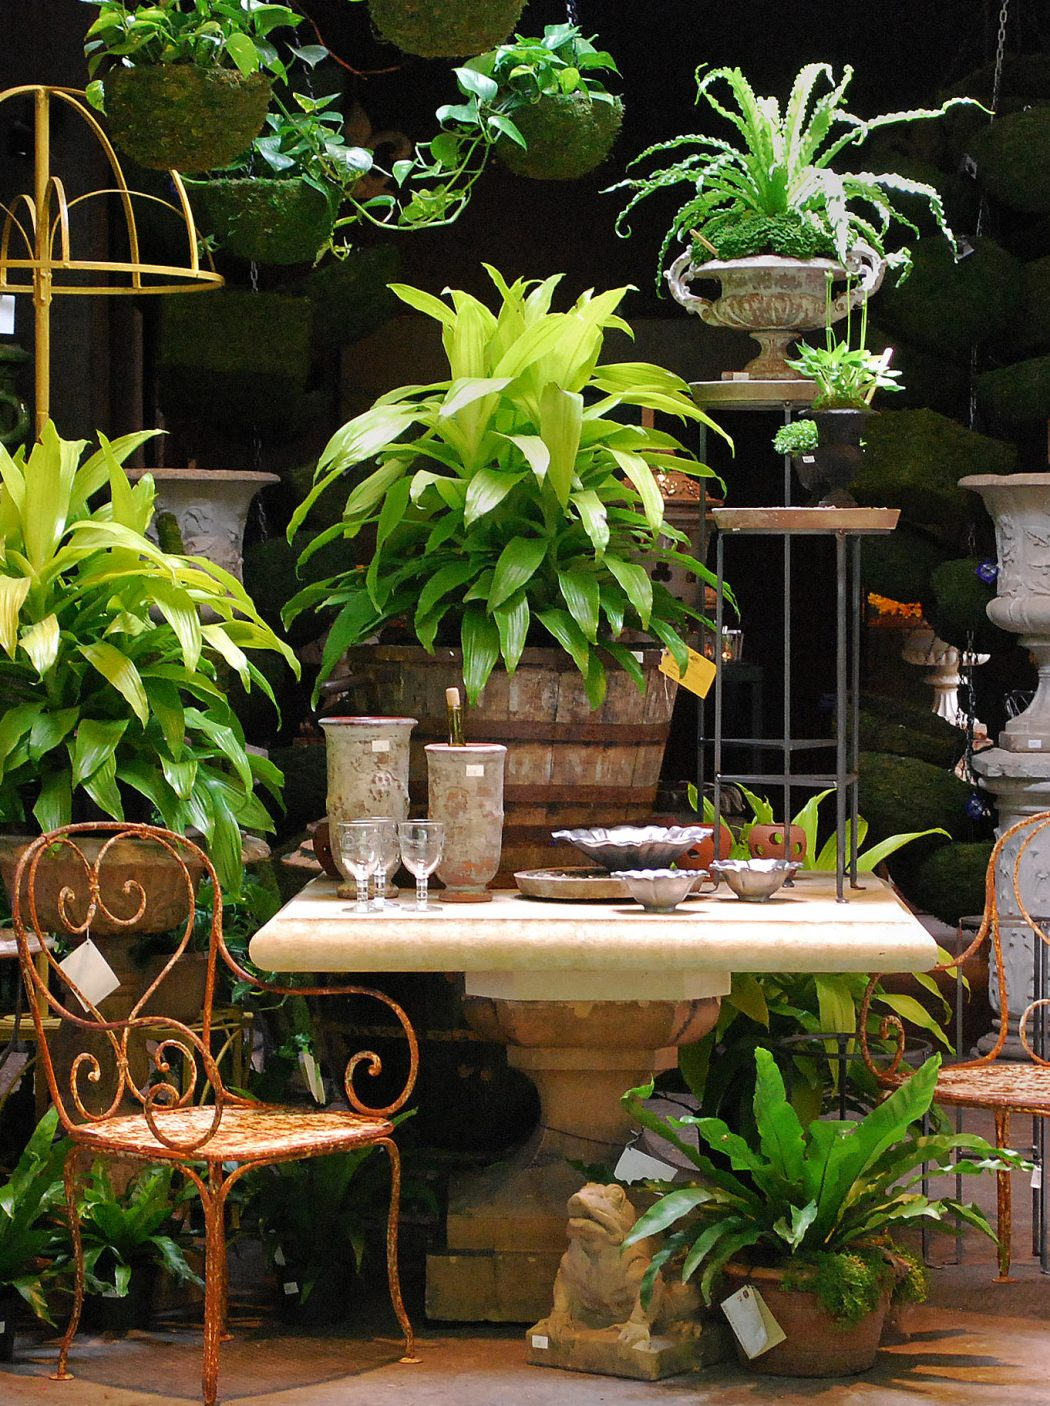 Fern How To Make Plants A Part Of Your Home Decoration?